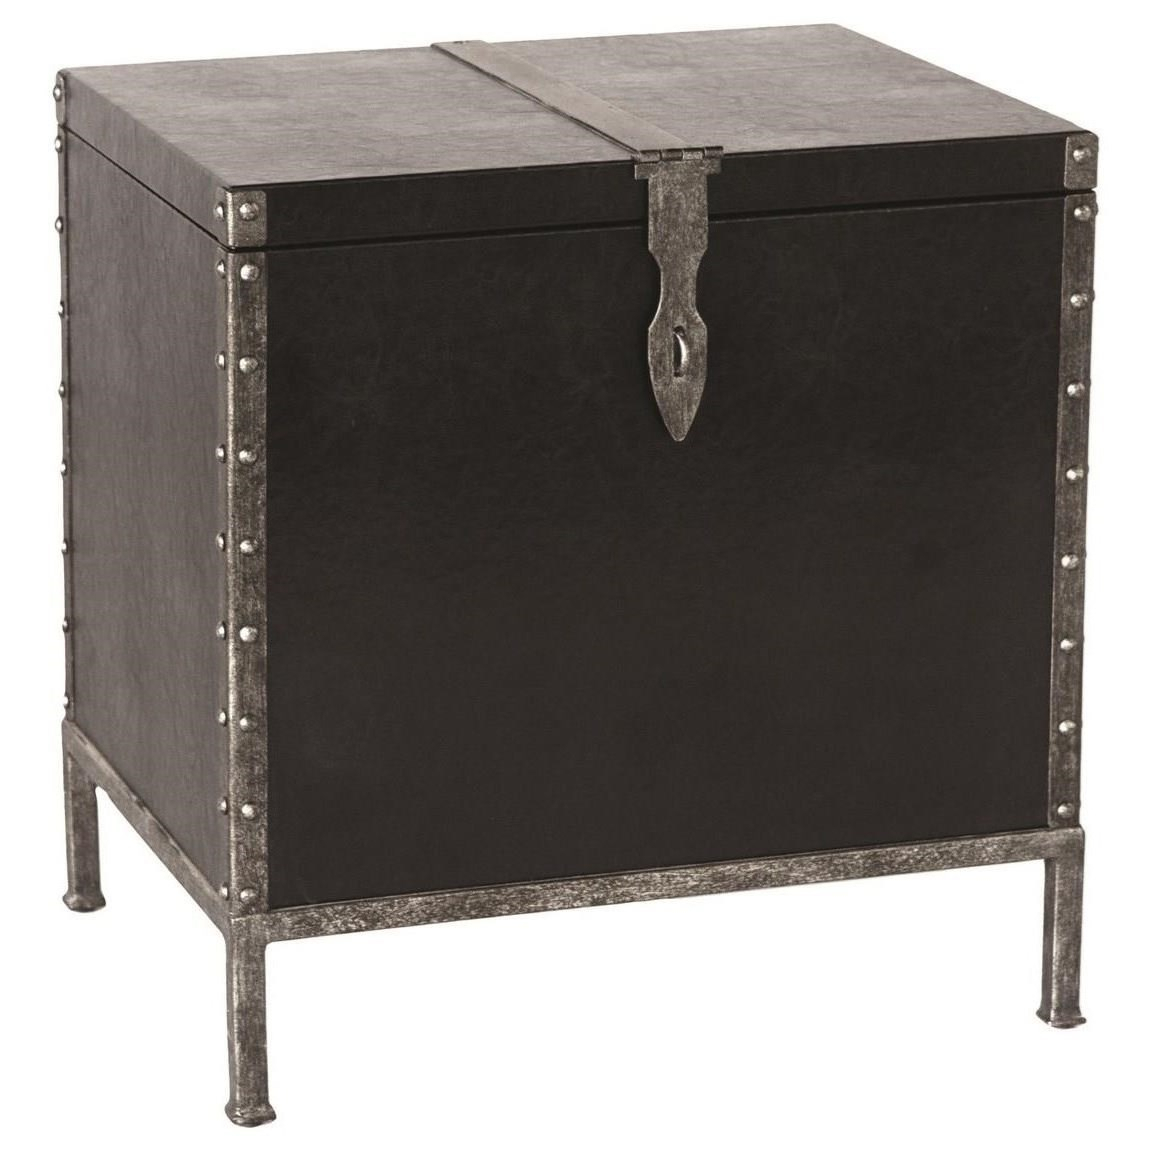 Accent Furniture - Occasional Tables Shawn Industrial Accent Table Uttermost At Dunk & Bright Furniture inside Jessenia Sideboards (Image 3 of 30)